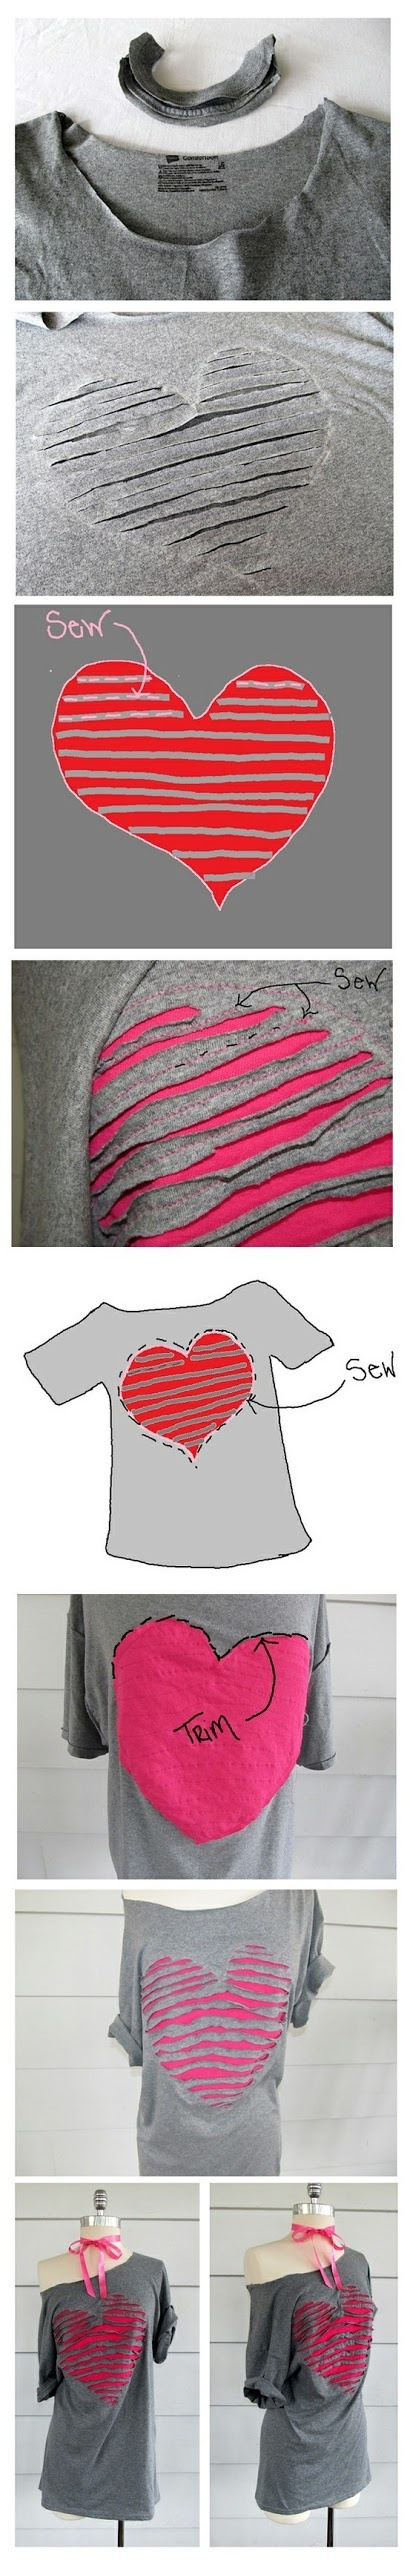 Recycling : Old t-shirt remake